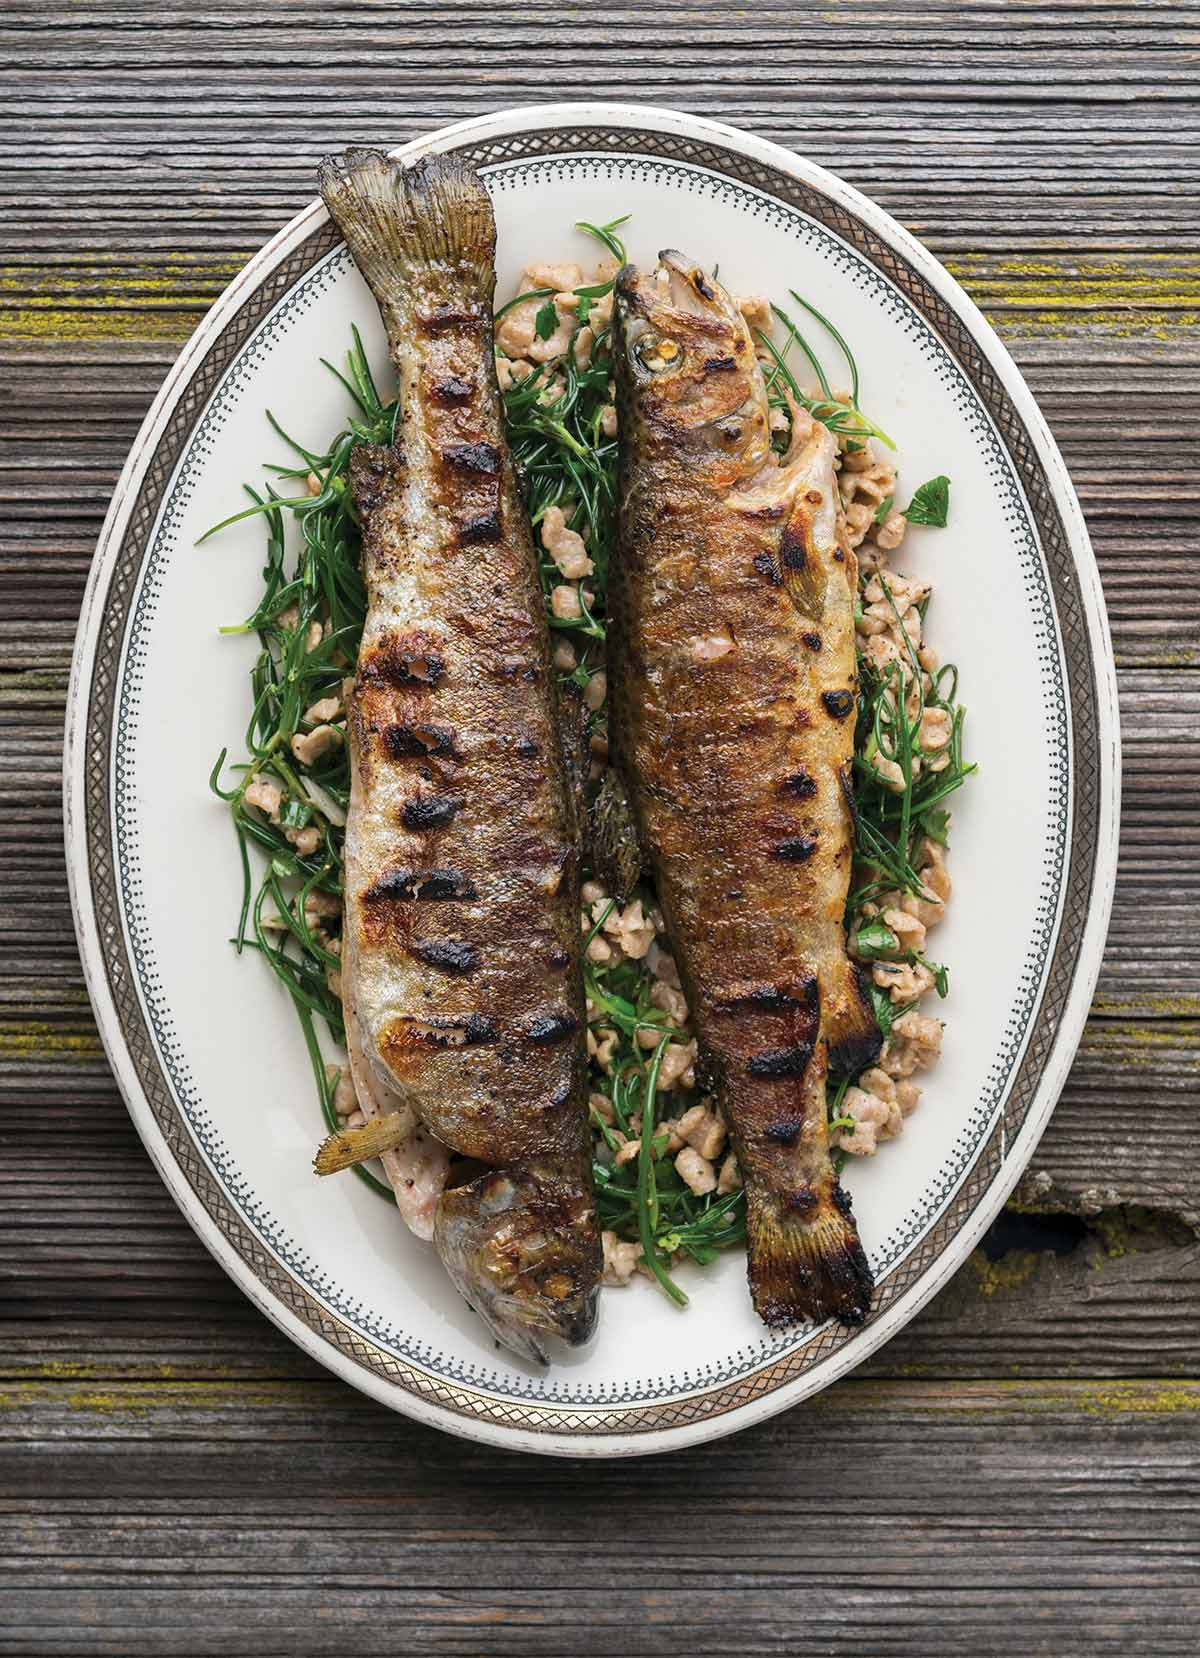 Grilled trout on a platter